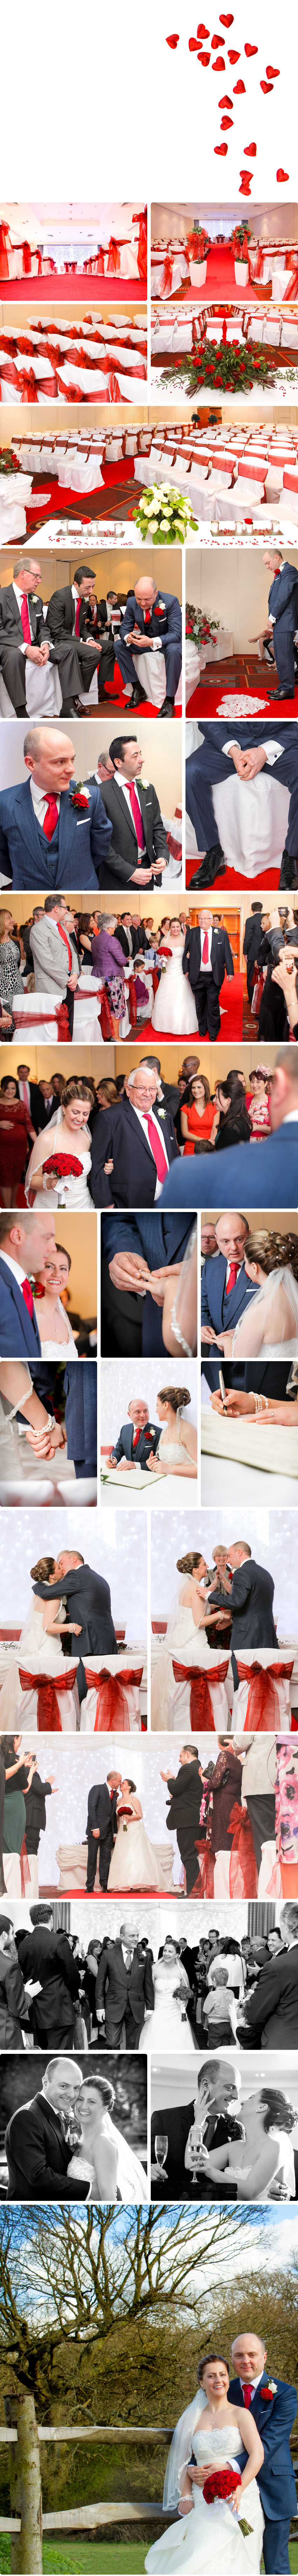 Ceremony, decoration and snapshots - Wedding at Waltham Abbey Marriott Hotel 03